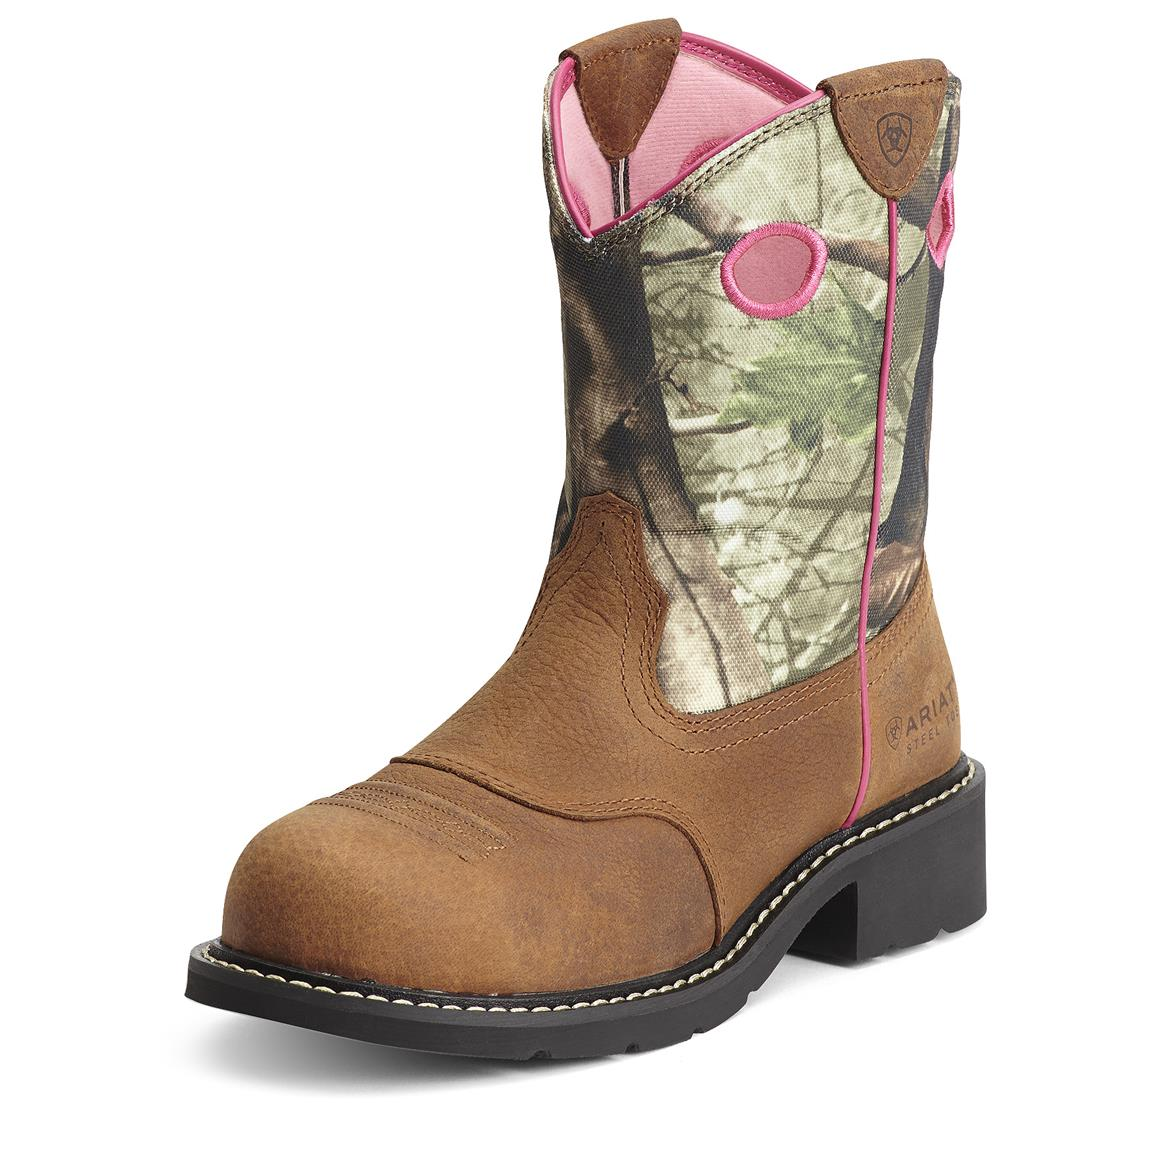 Women's Ariat Fatbaby Steel Toe Cowgirl Boots, Auburn / Camo